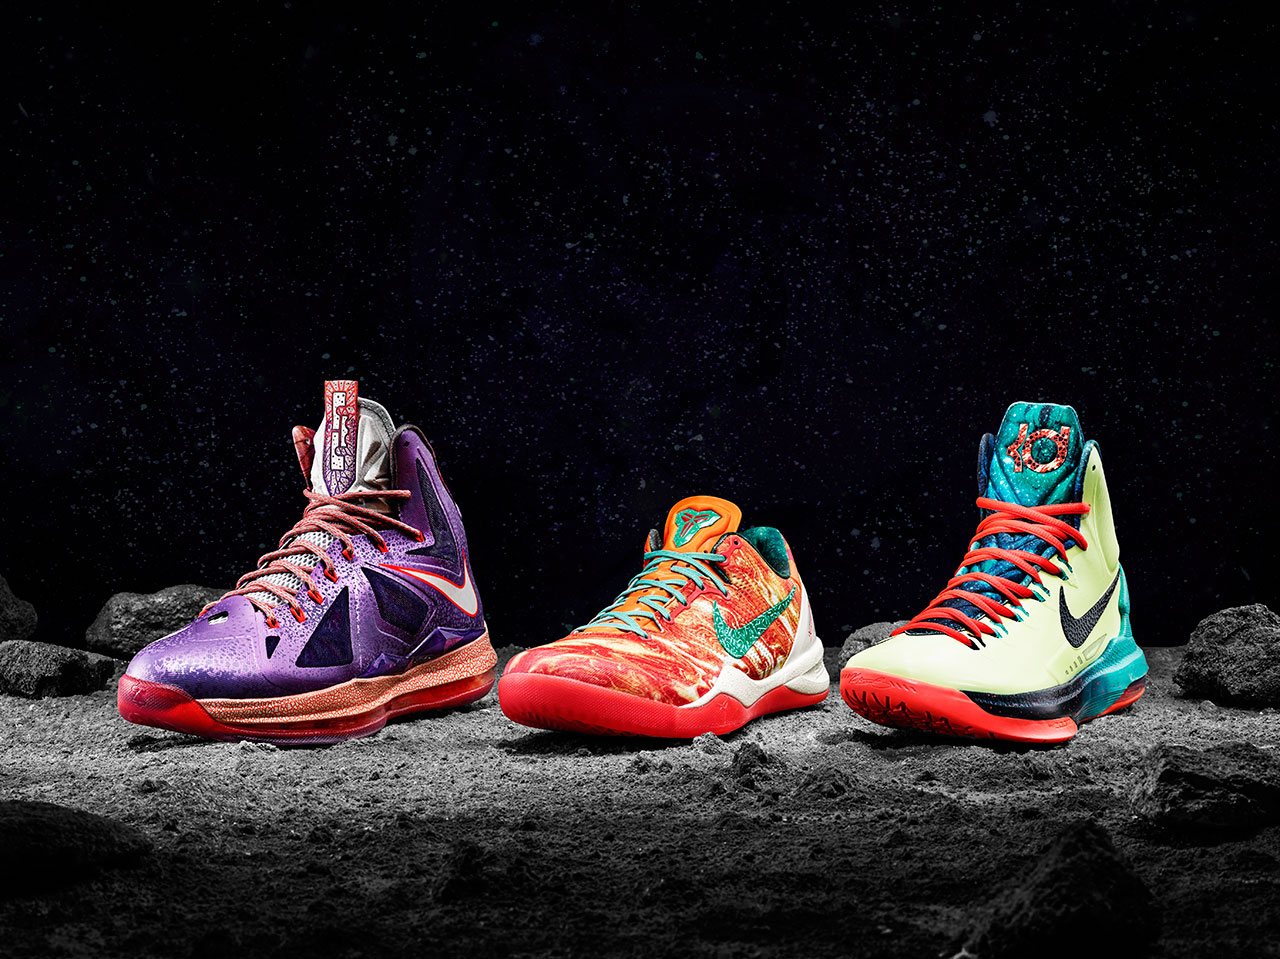 Mission Control 'Houston' Helps Launch New Nike Sneakers